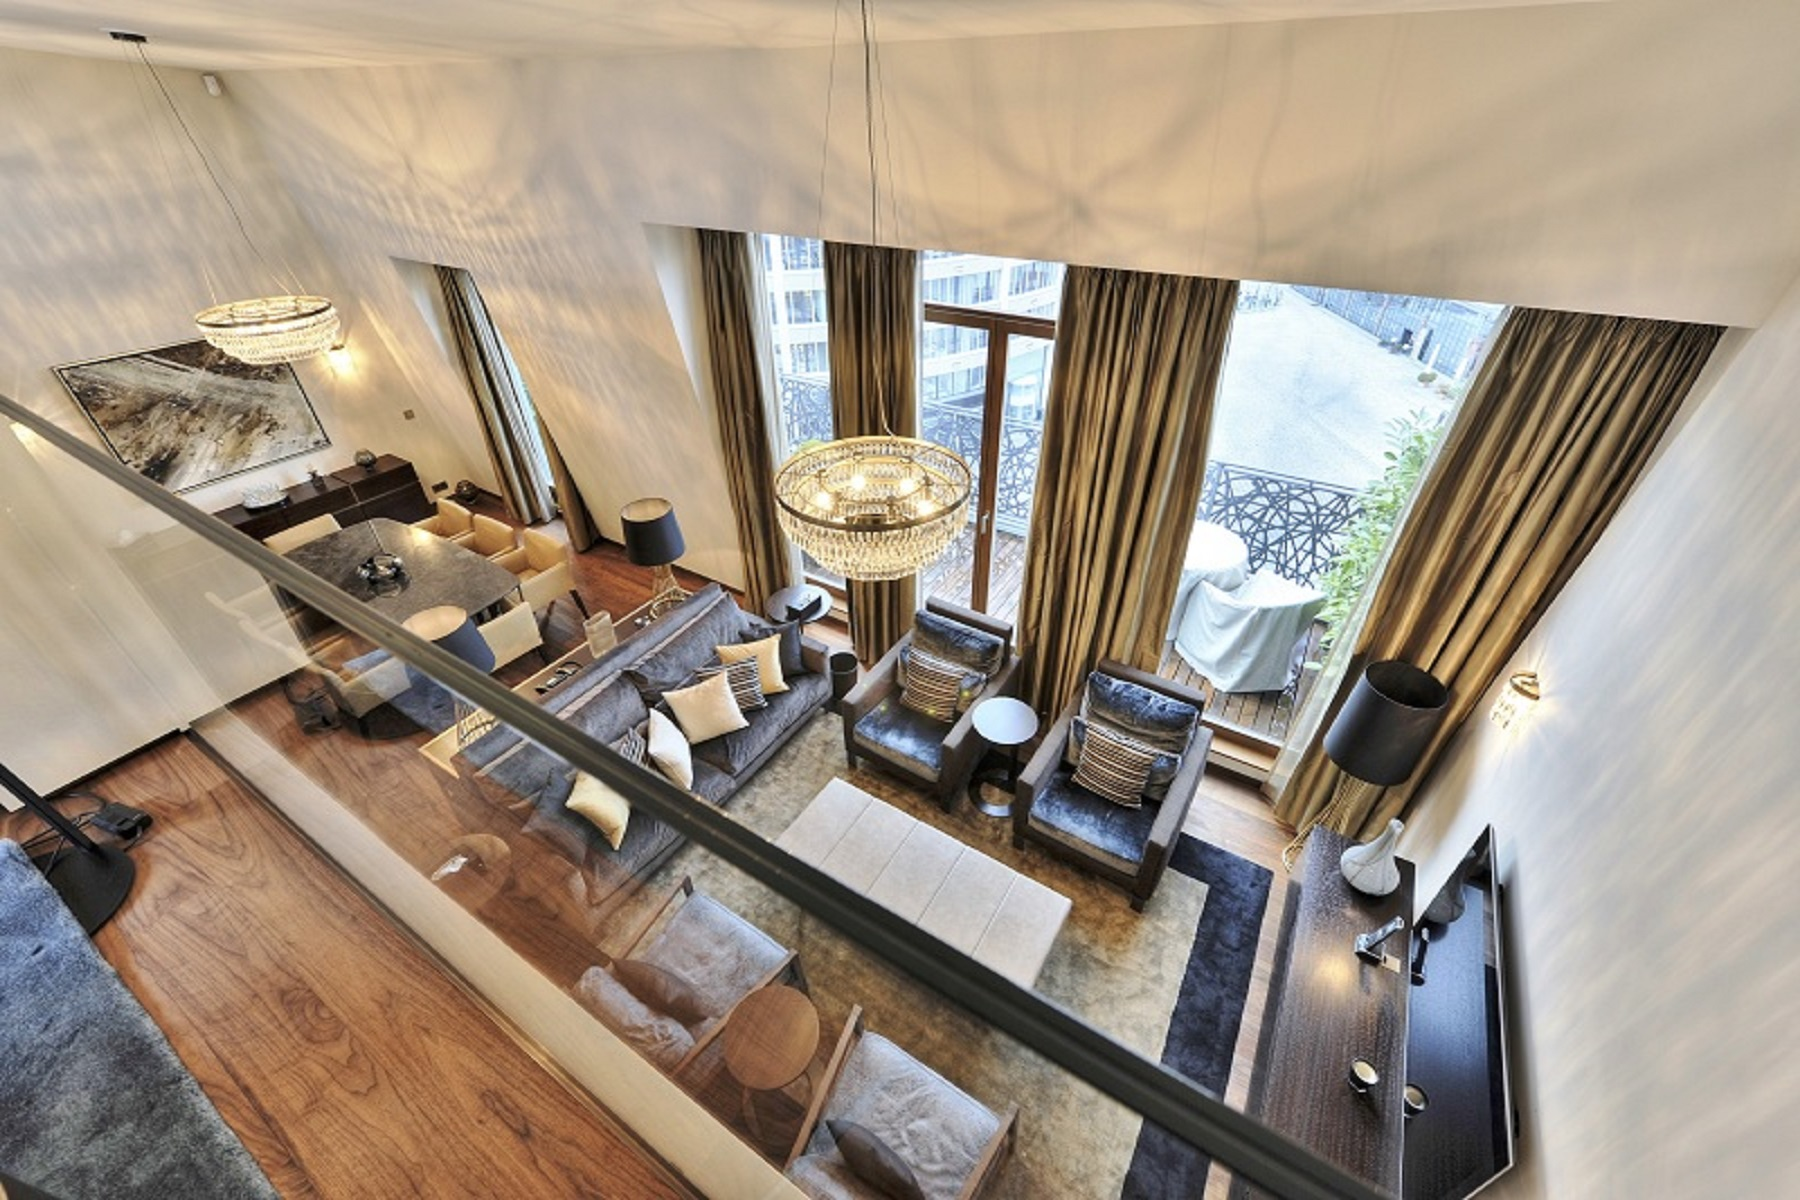 Apartment for Sale at Exclusive Penthouse at the Main River Frankfurt, Hessen 60594 Germany